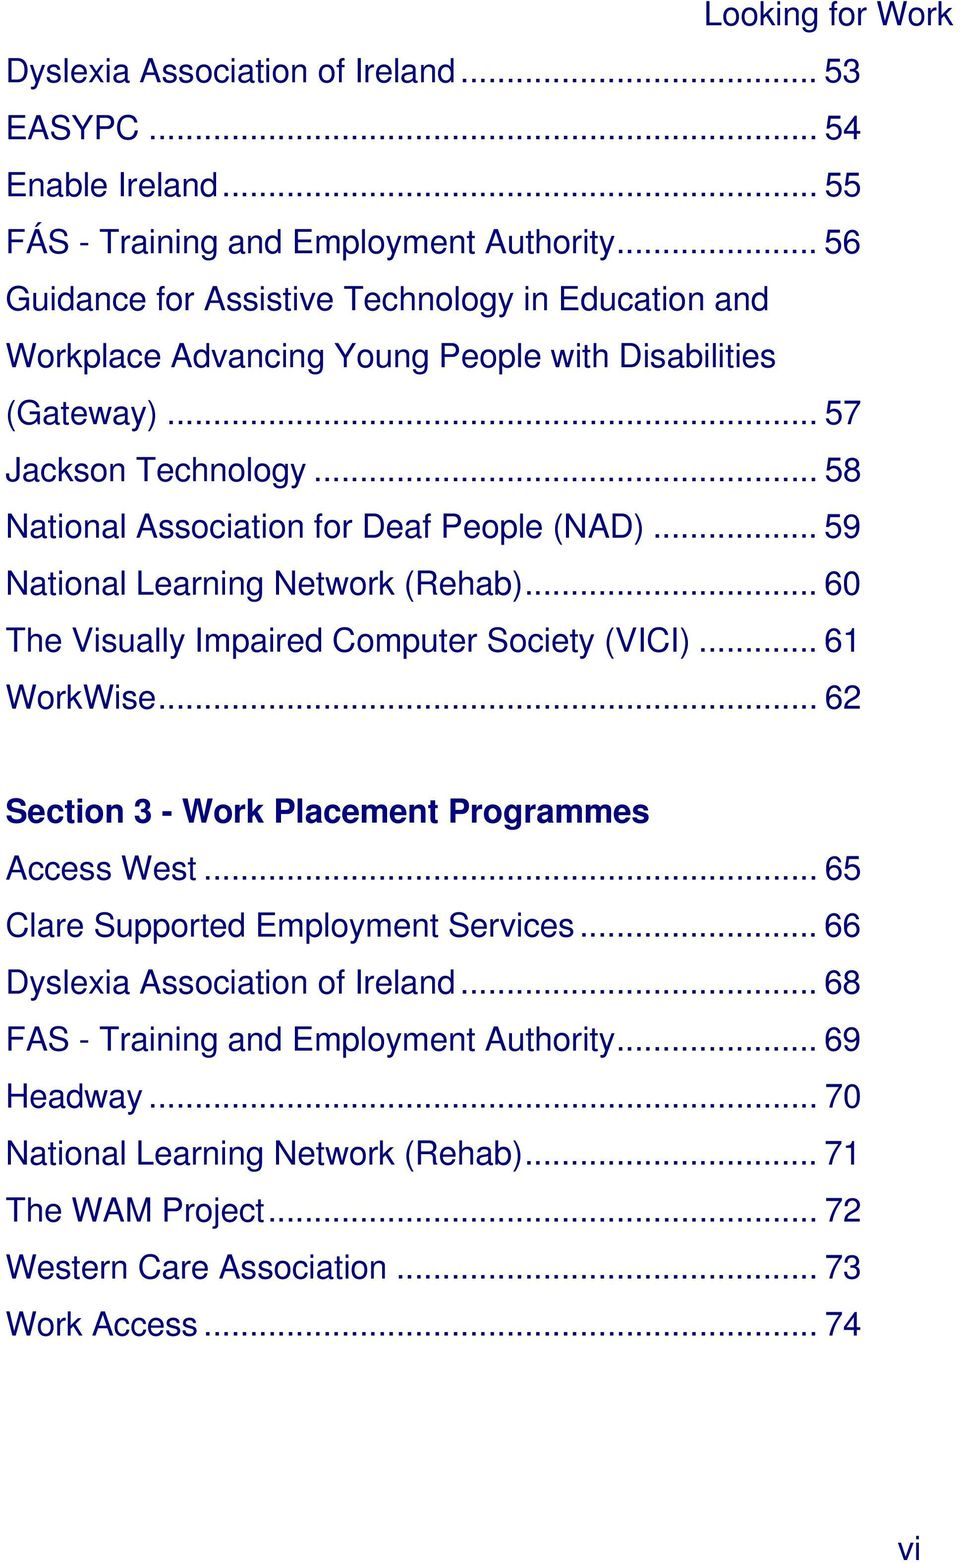 .. 58 National Association for Deaf People (NAD)... 59 National Learning Network (Rehab)... 60 The Visually Impaired Computer Society (VICI)... 61 WorkWise.